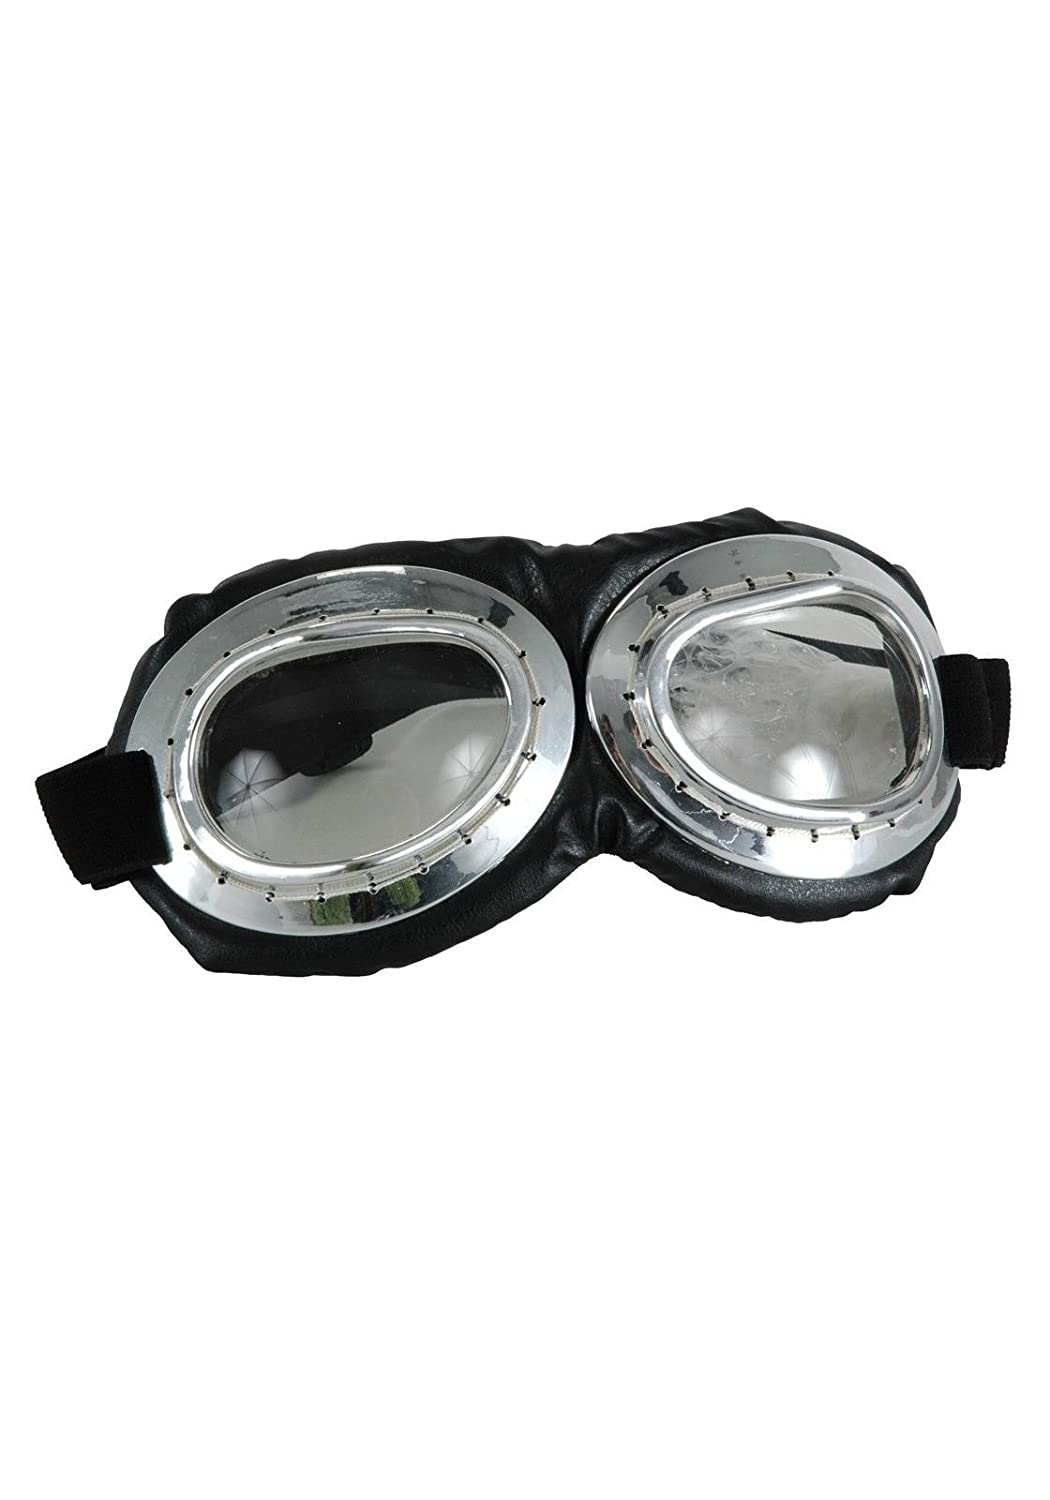 Aviator Goggles Silver elope Aviator Goggles Getting Fit 618480283013